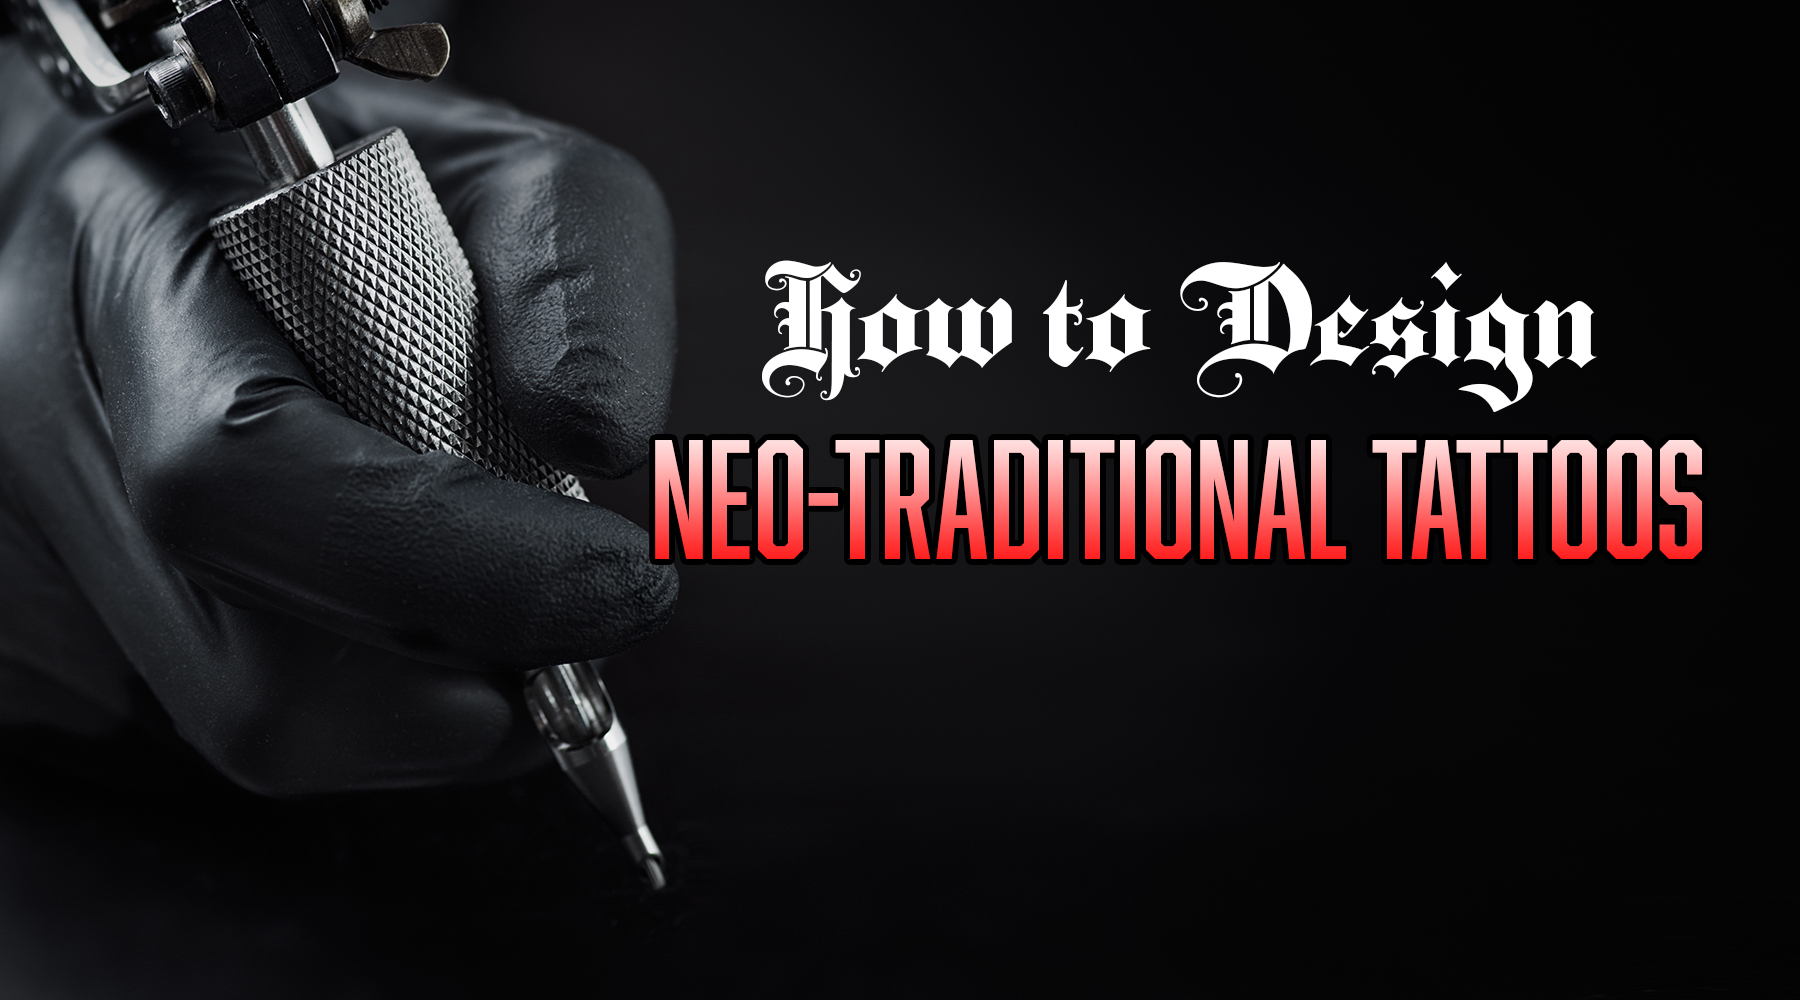 If you're looking to get a tattoo that's similar to American Traditional, but with a modern flare, then Neo-Traditional might be the style choice for you. The Neo-Traditional tattoo style is heavily i...